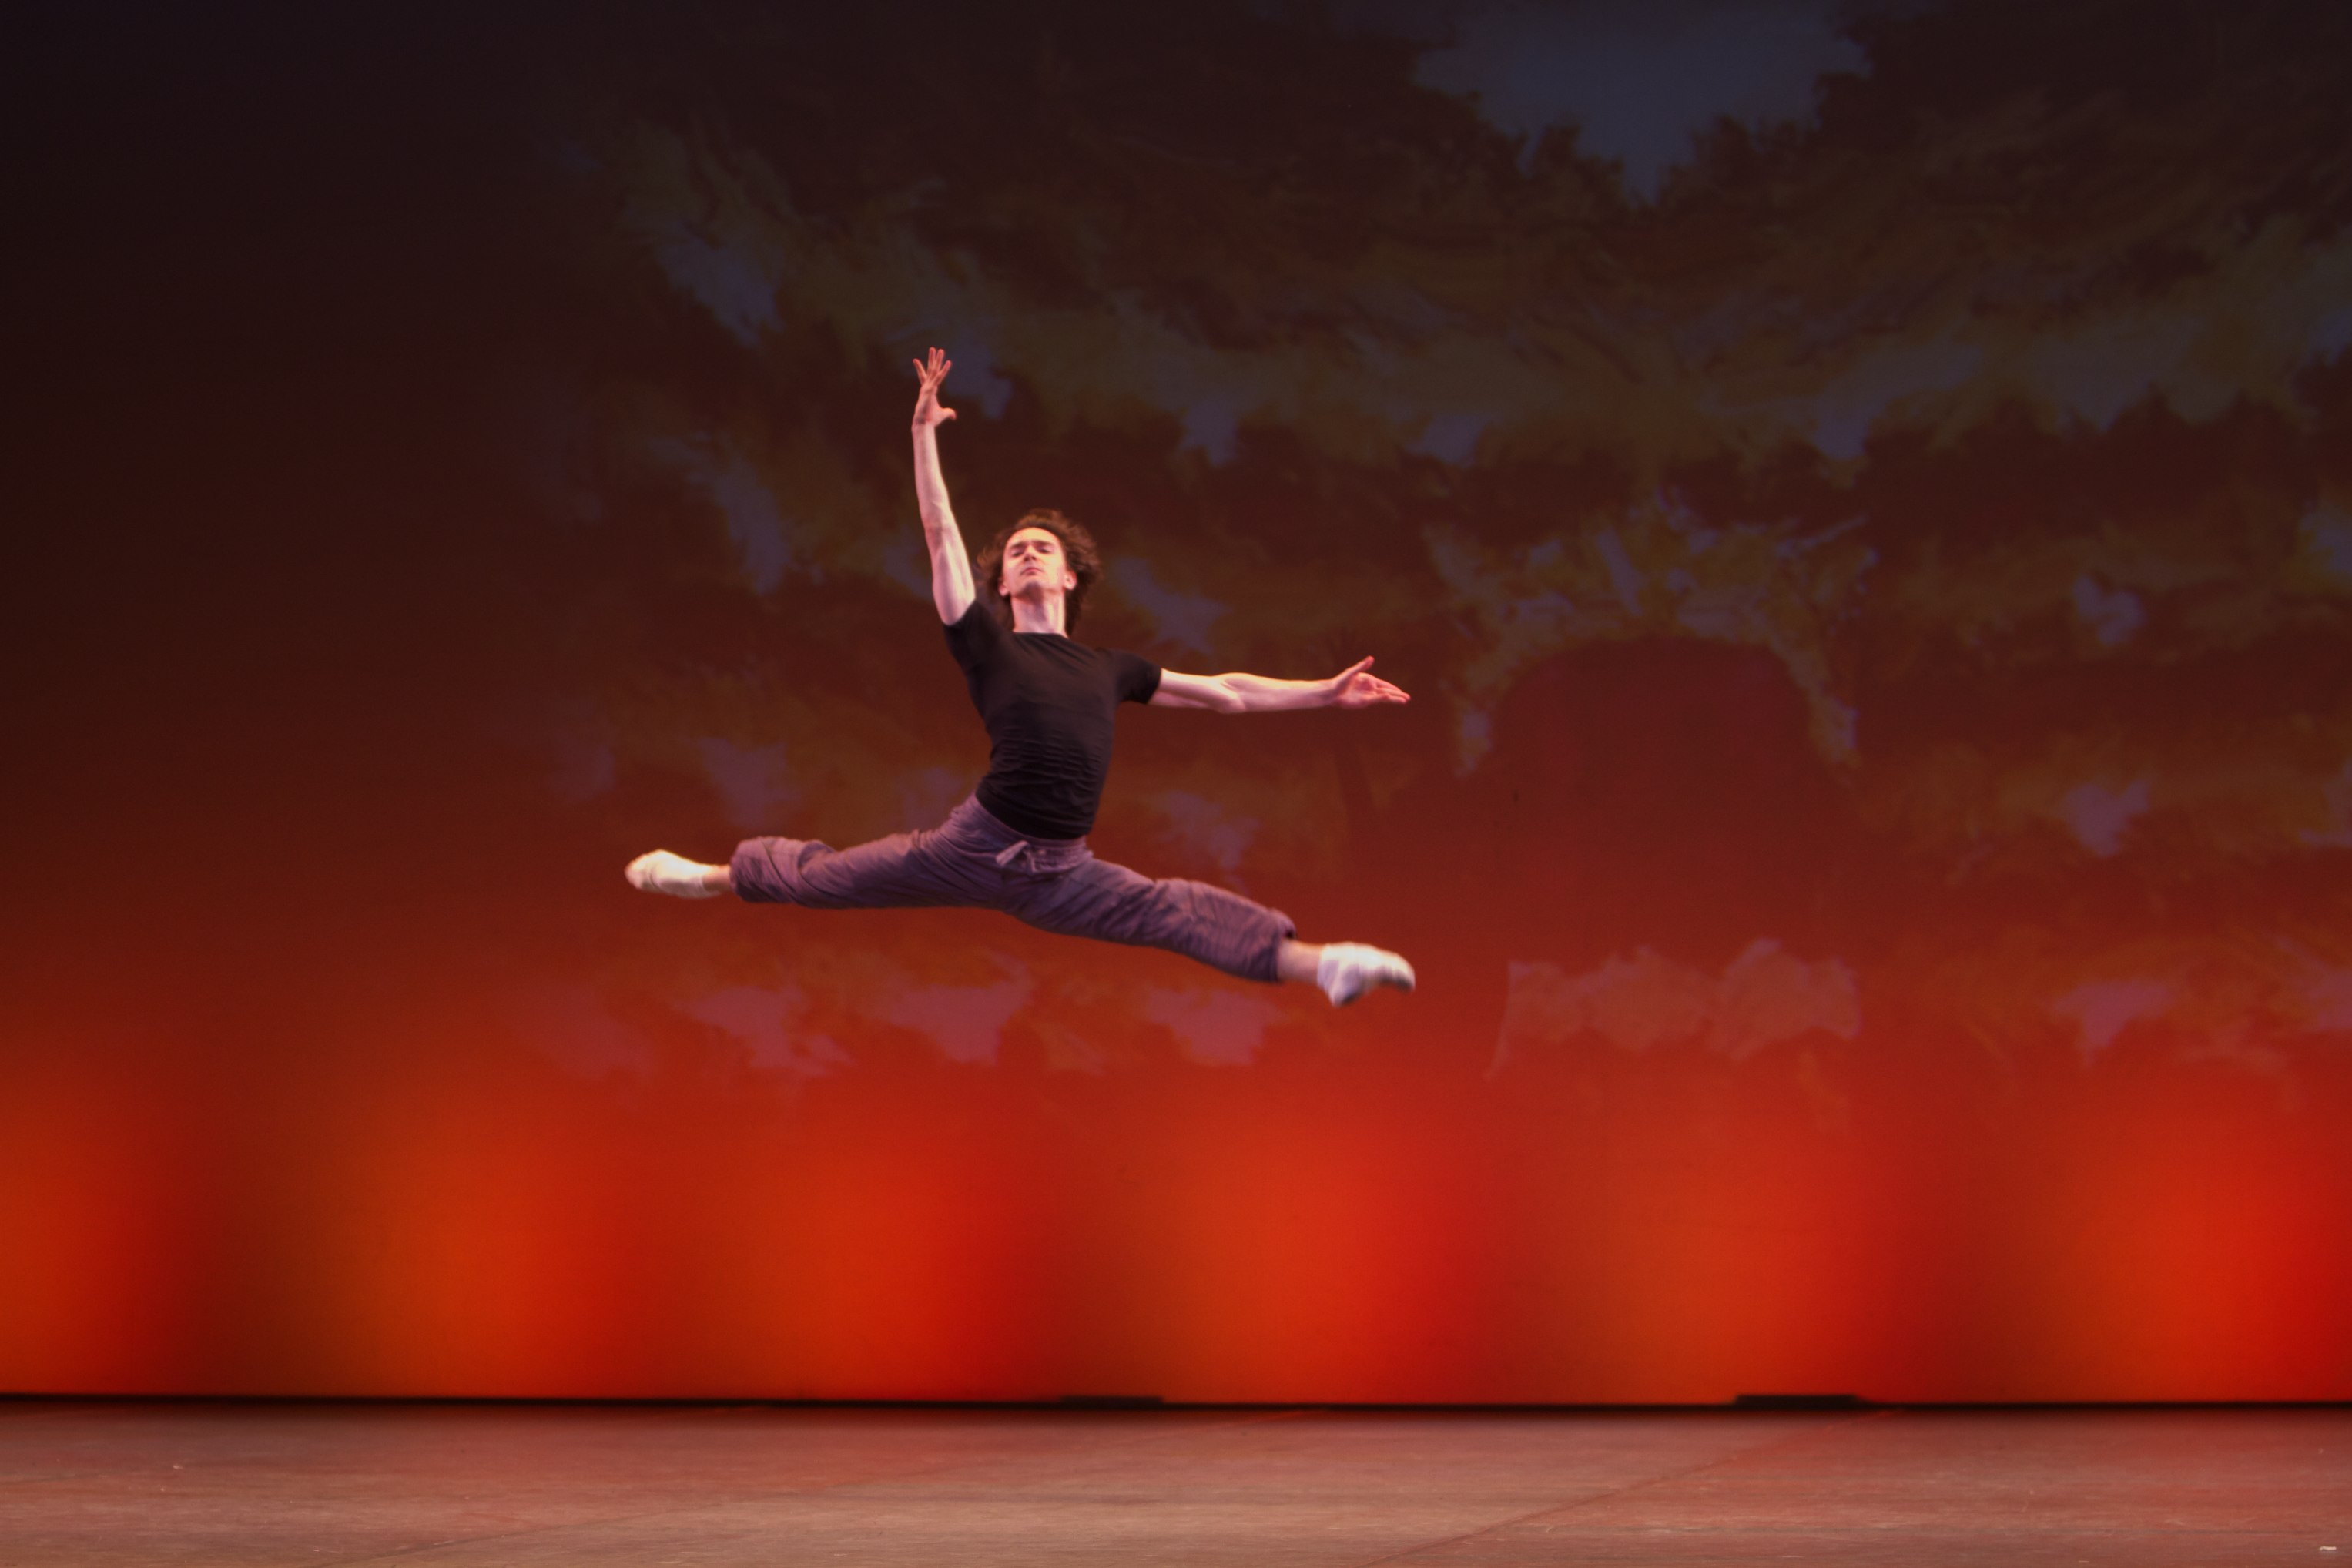 dancer jumps across the stage in a ballet